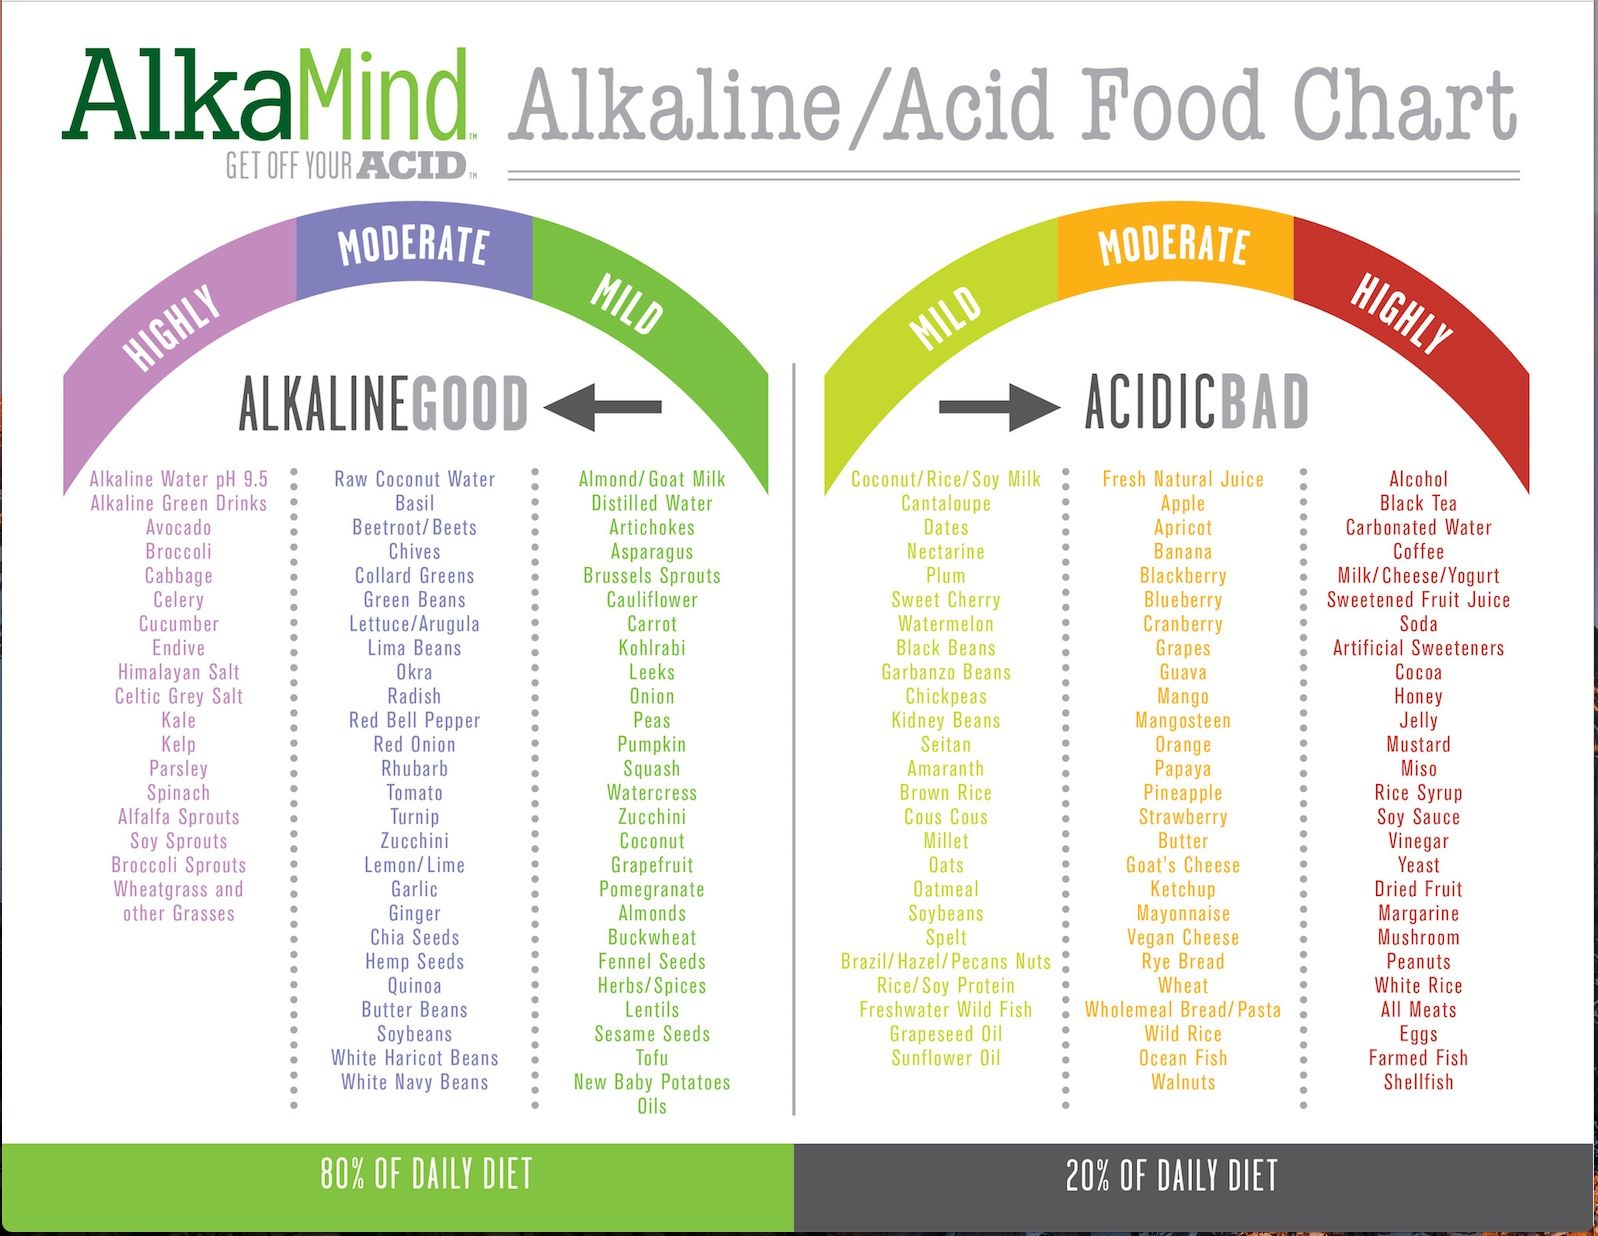 Alkaline acid food chart i have been on a low carb high alkaline